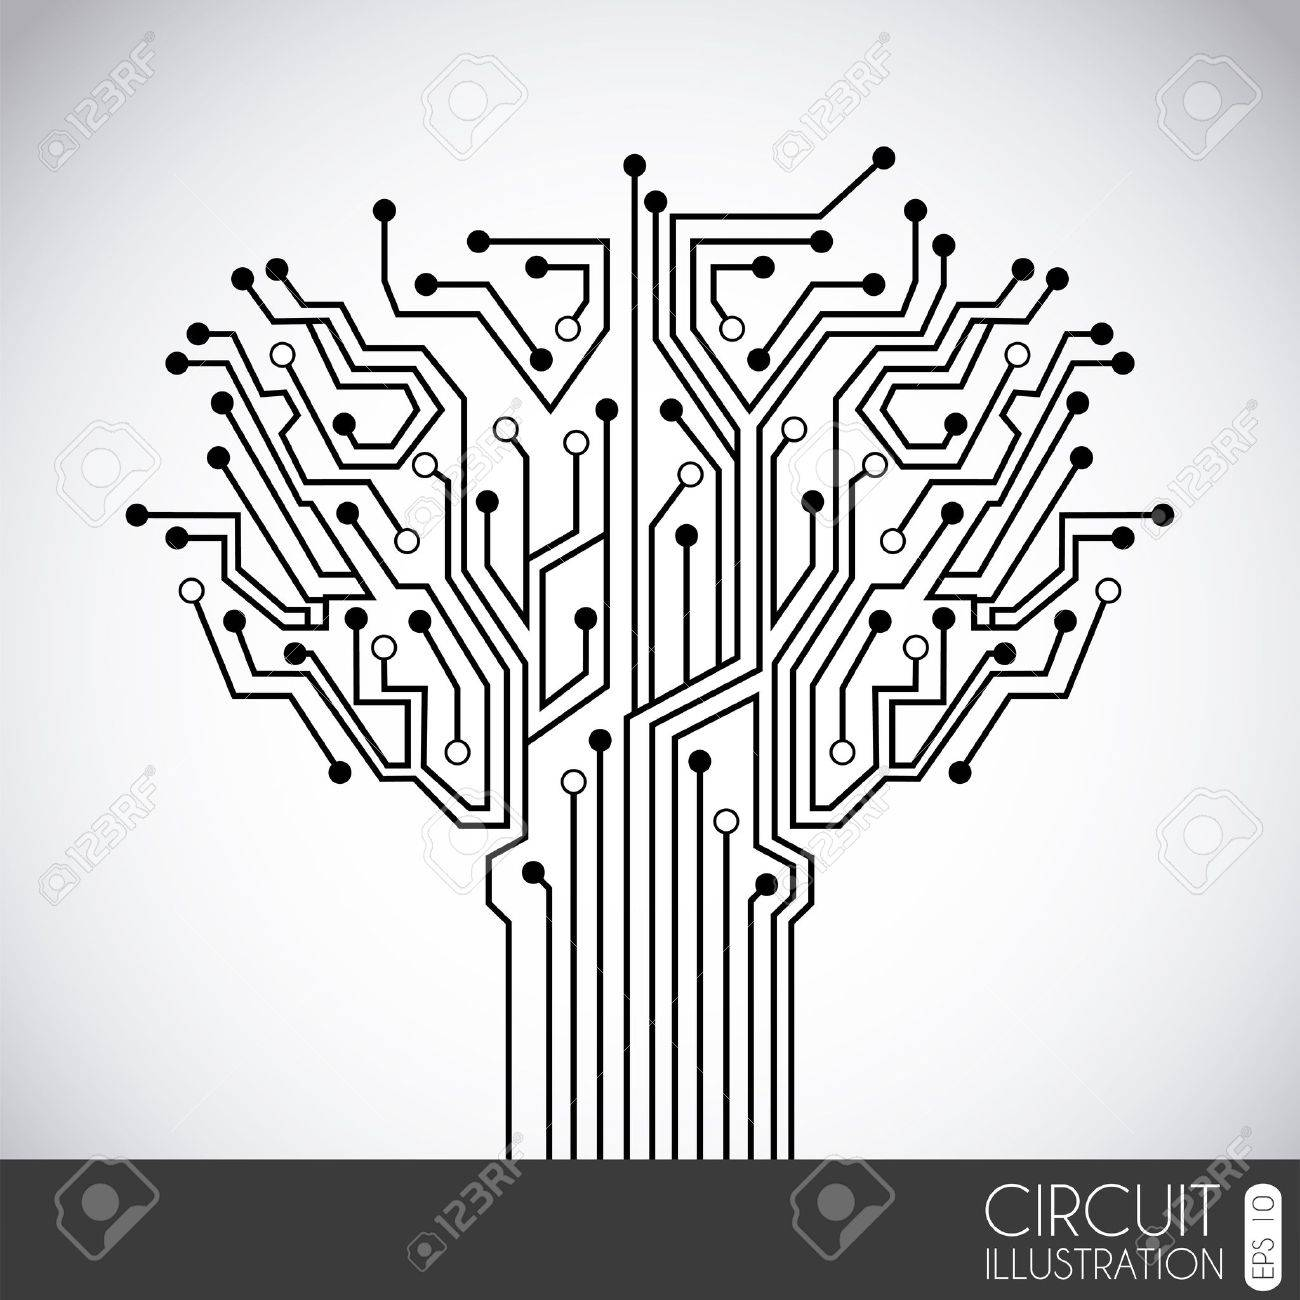 Amazing Graphic Art On Circuits Image Collection - Wiring Standart ...